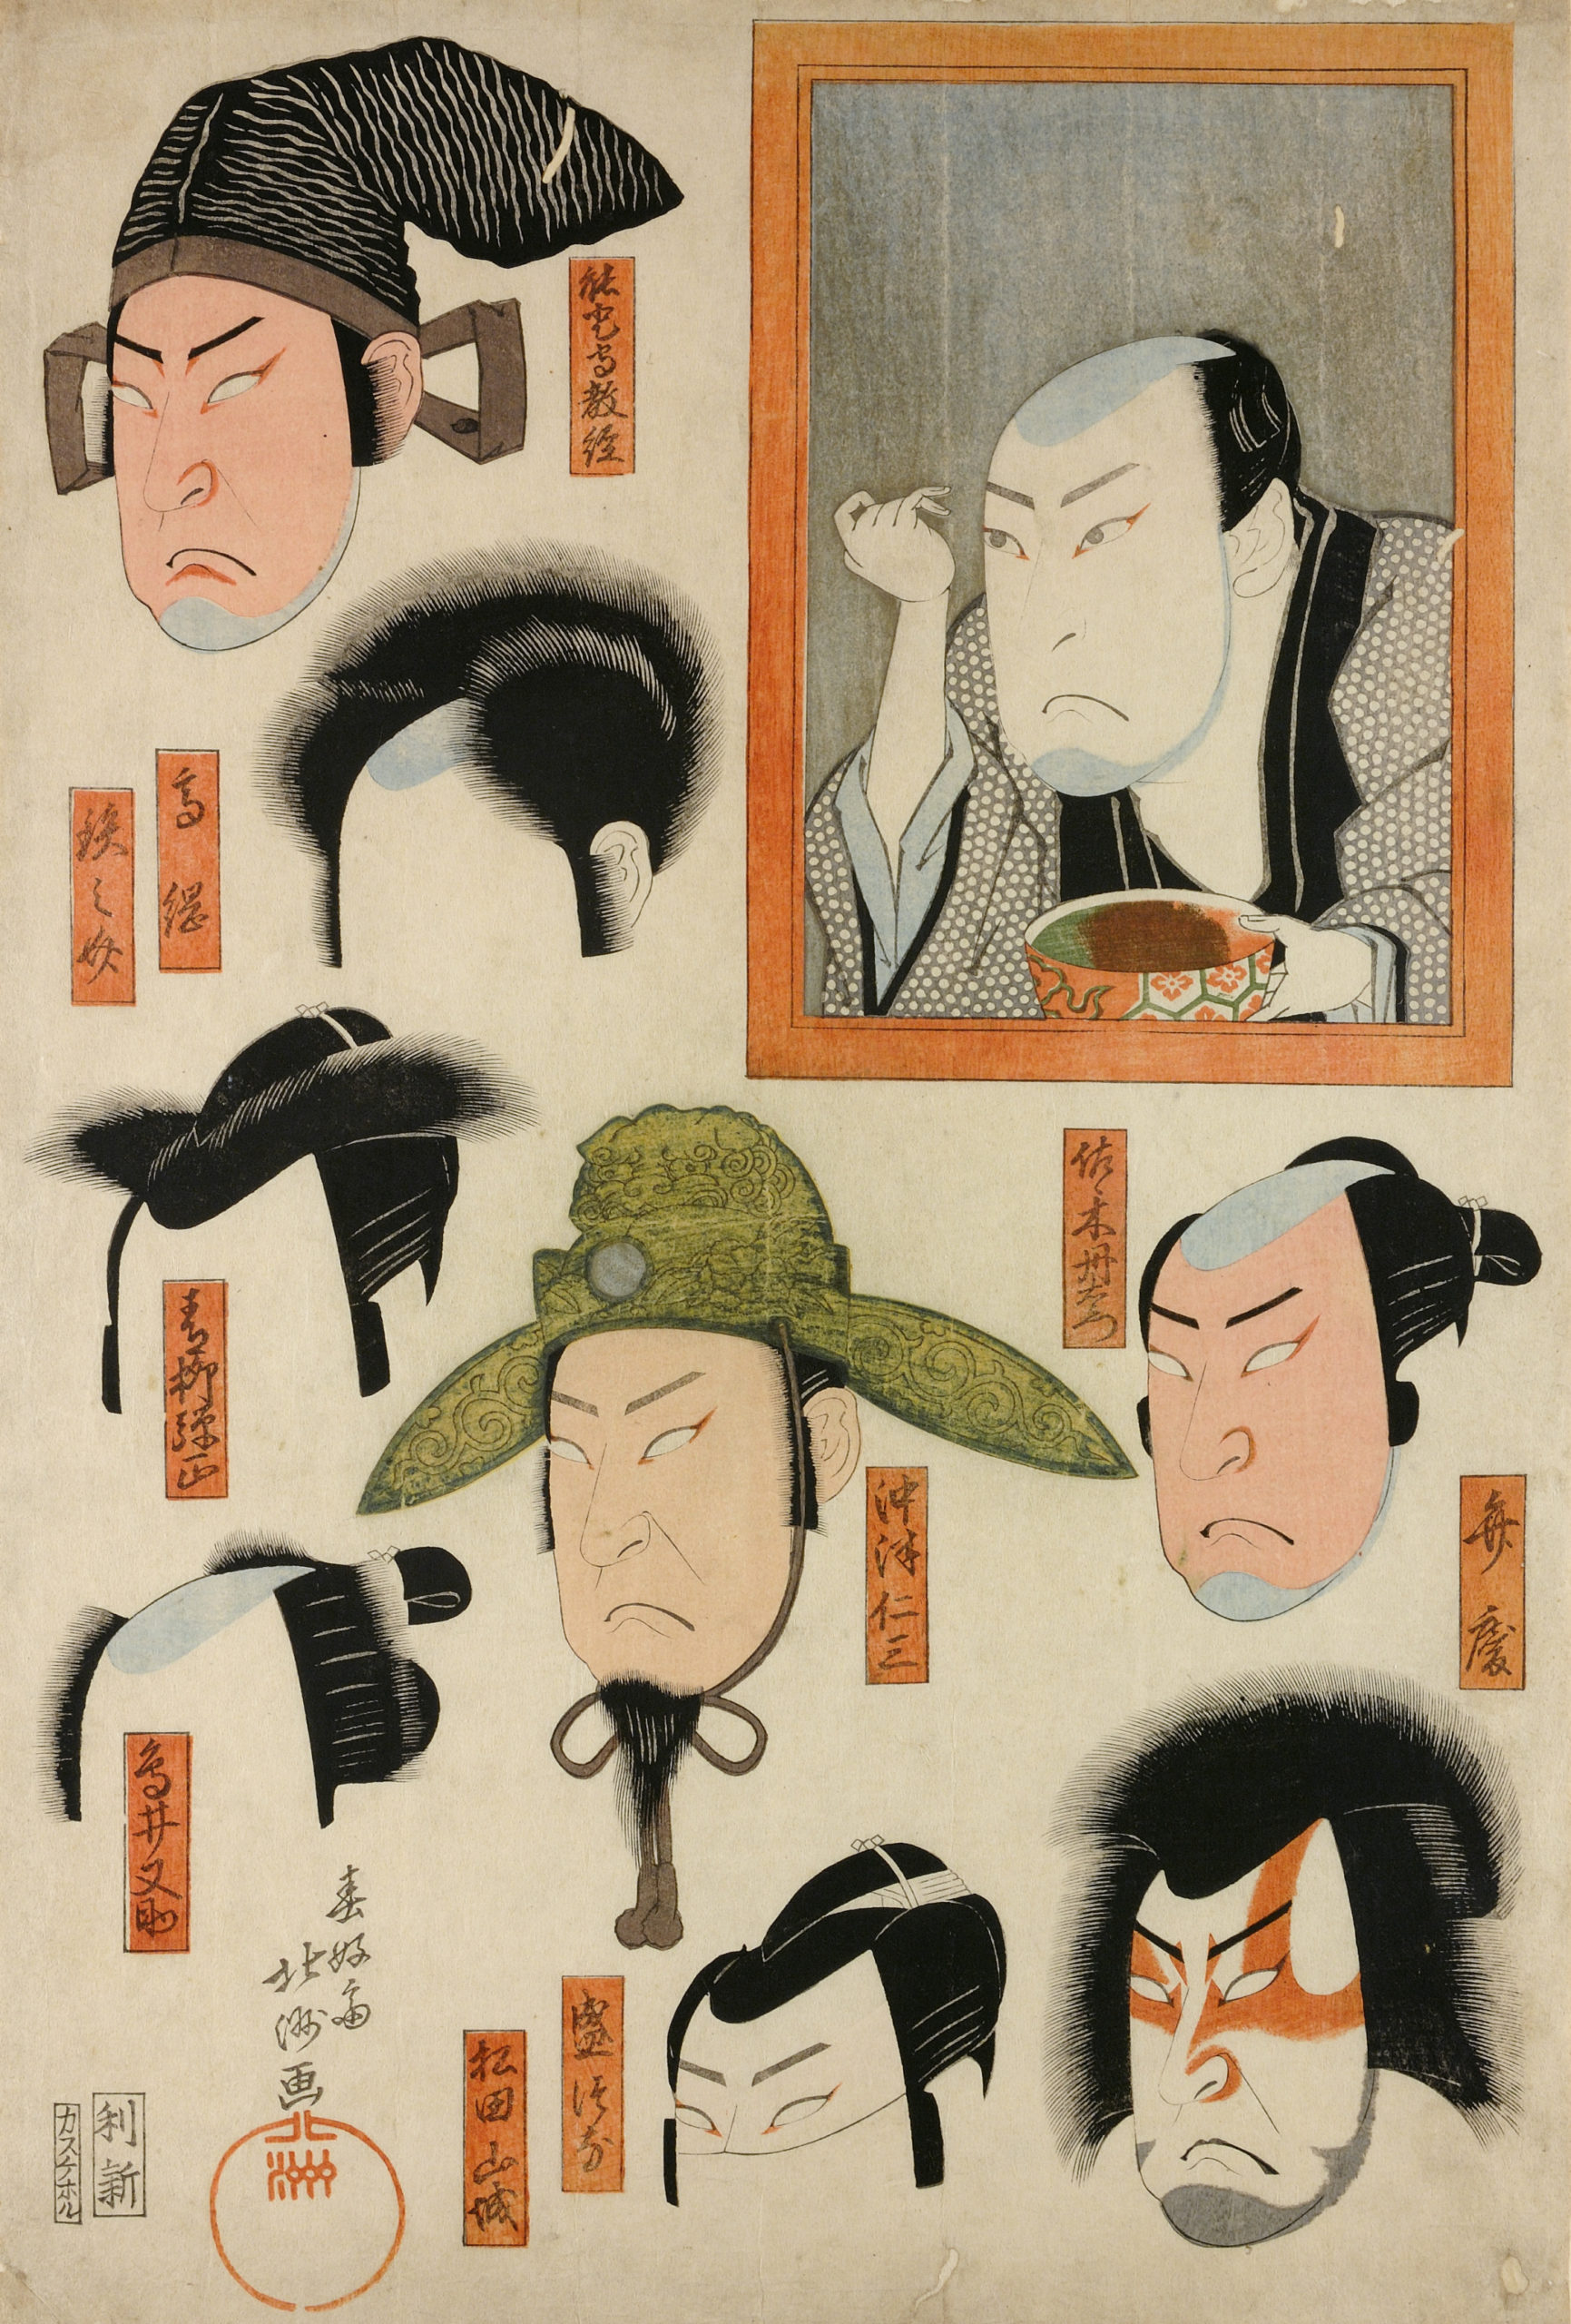 A colour woodblock print showing a bust portrait of the kabuki actor Arashi Kichisaburo II reflected in a mirror, surrounded by wigs and hats from his famous roles.